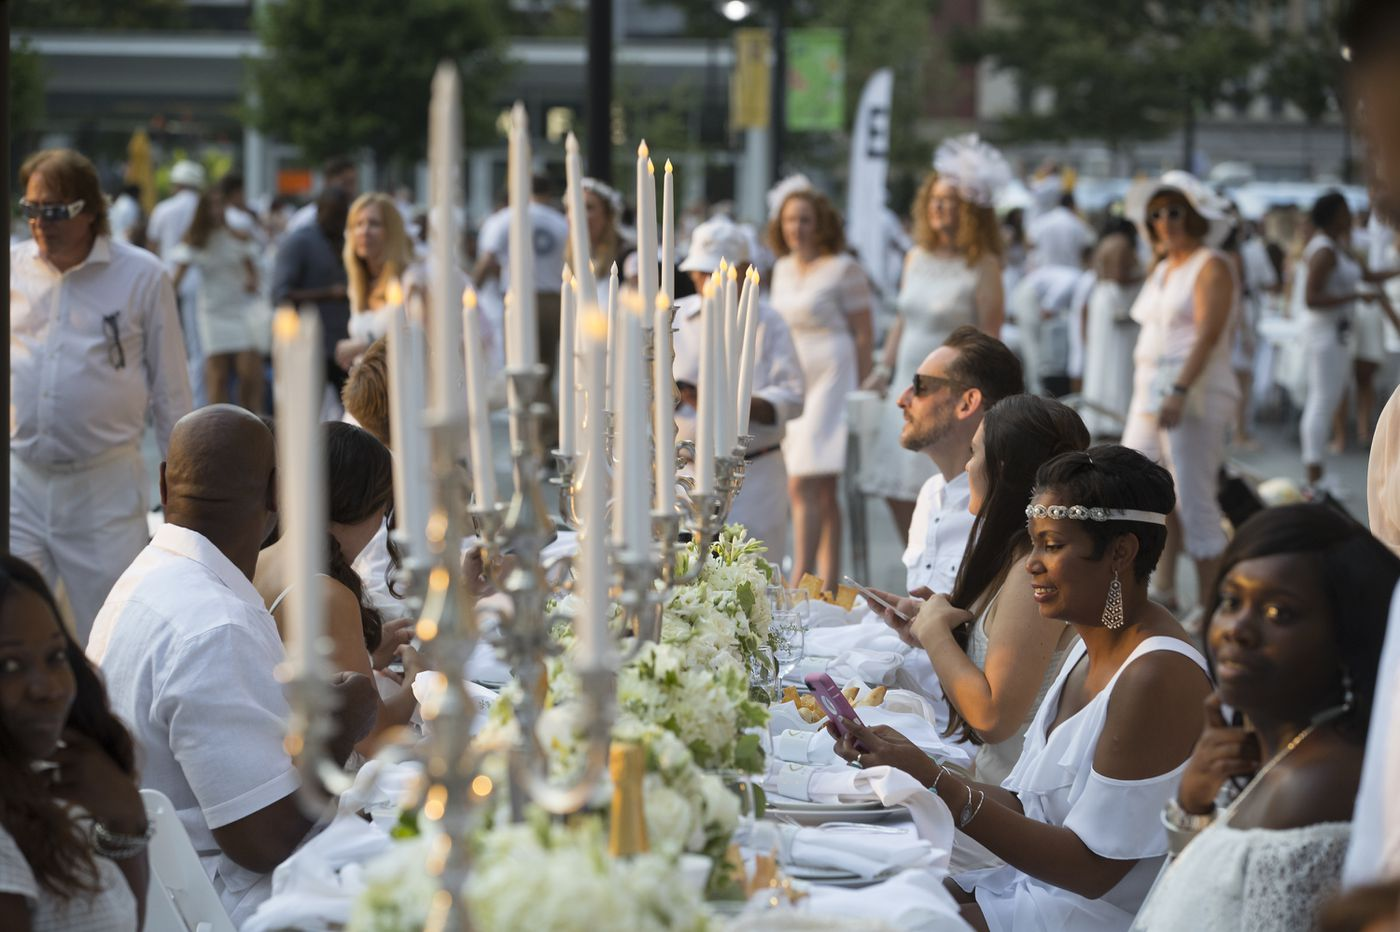 Dîner en Blanc: A fun party, or insult to Philly's gritty reputation? Pro/con | Opinion